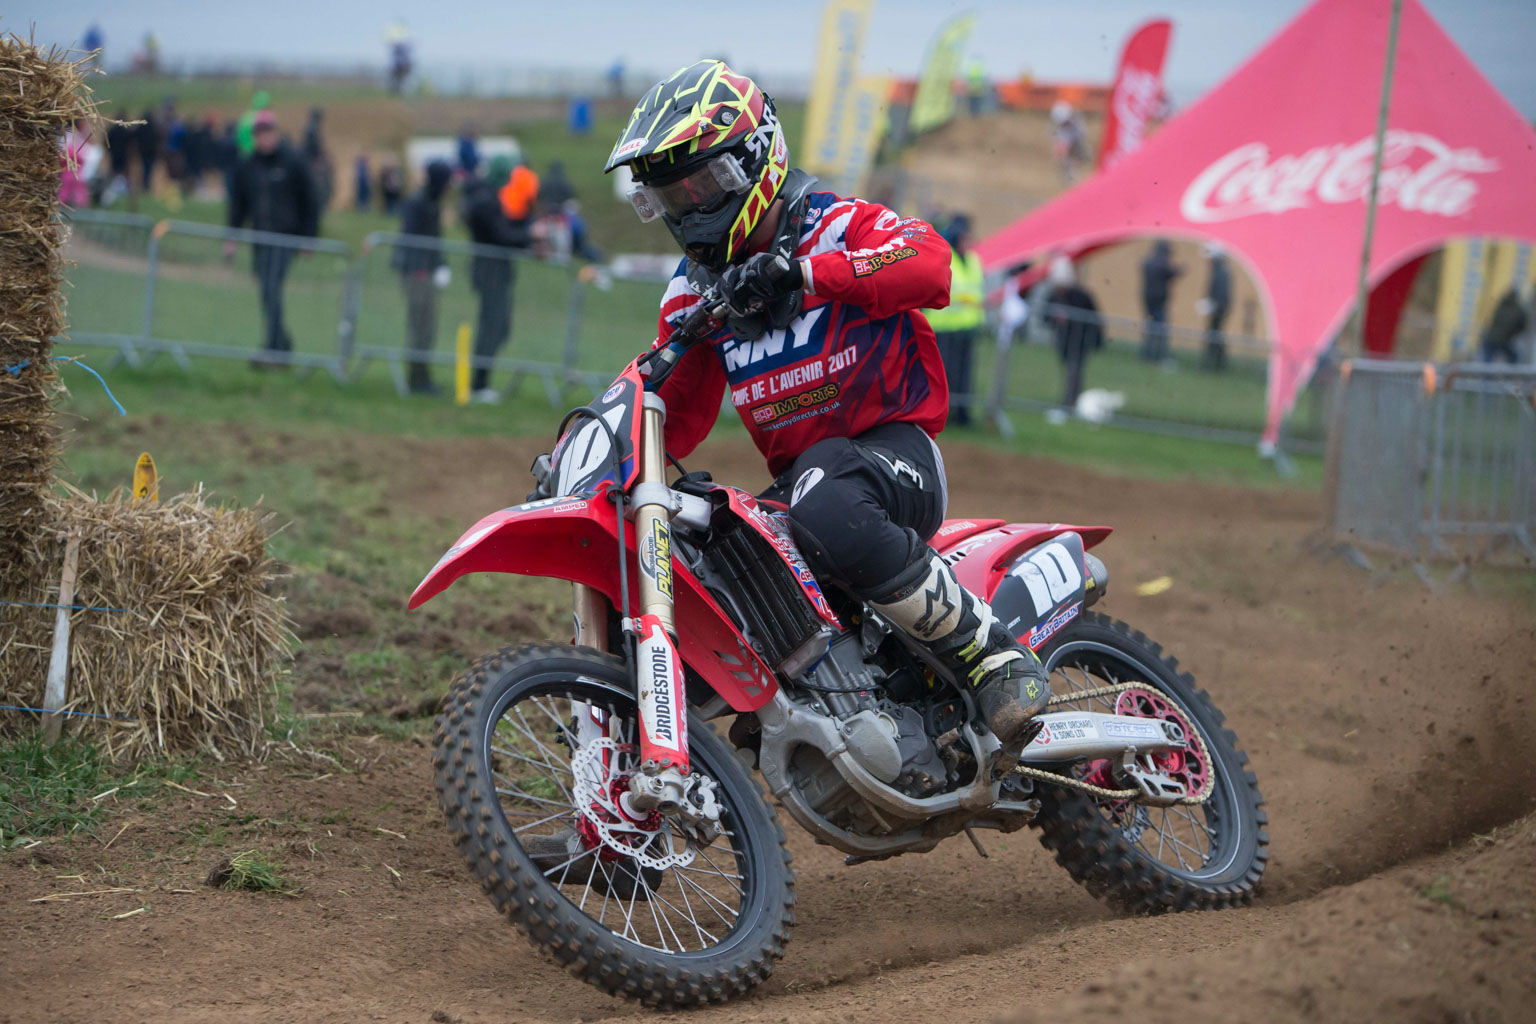 Josh Gilbert is fast on the CRF